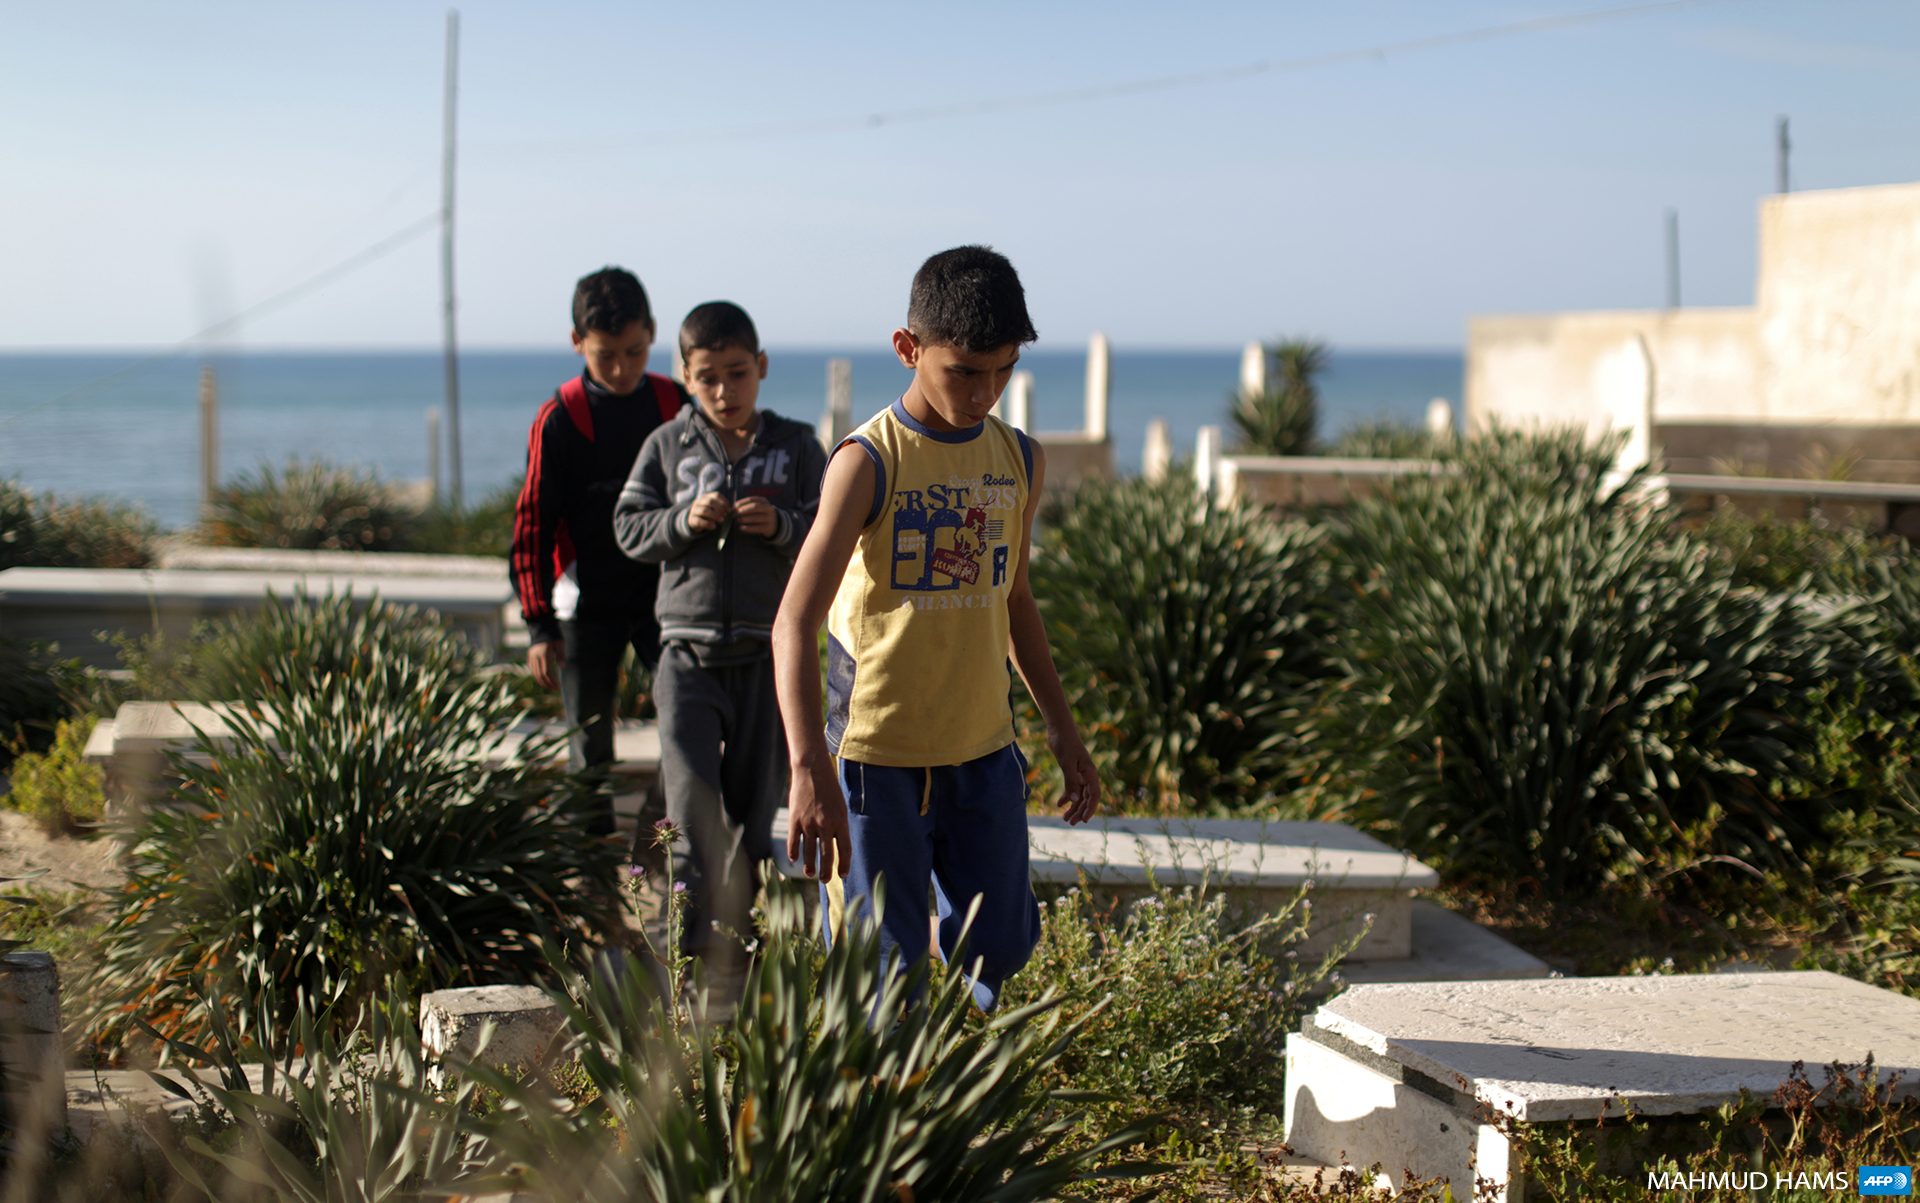 Palestinian boys from the Bakr family, who survived an Israeli military strike on a beach in Gaza that killed four of their relatives during the 50-day Israeli military offensive in the summer of 2014, visit the graves of their loved-ones in Gaza City on March 31, 2015. (Photo: AFP / Mahmud Hams)